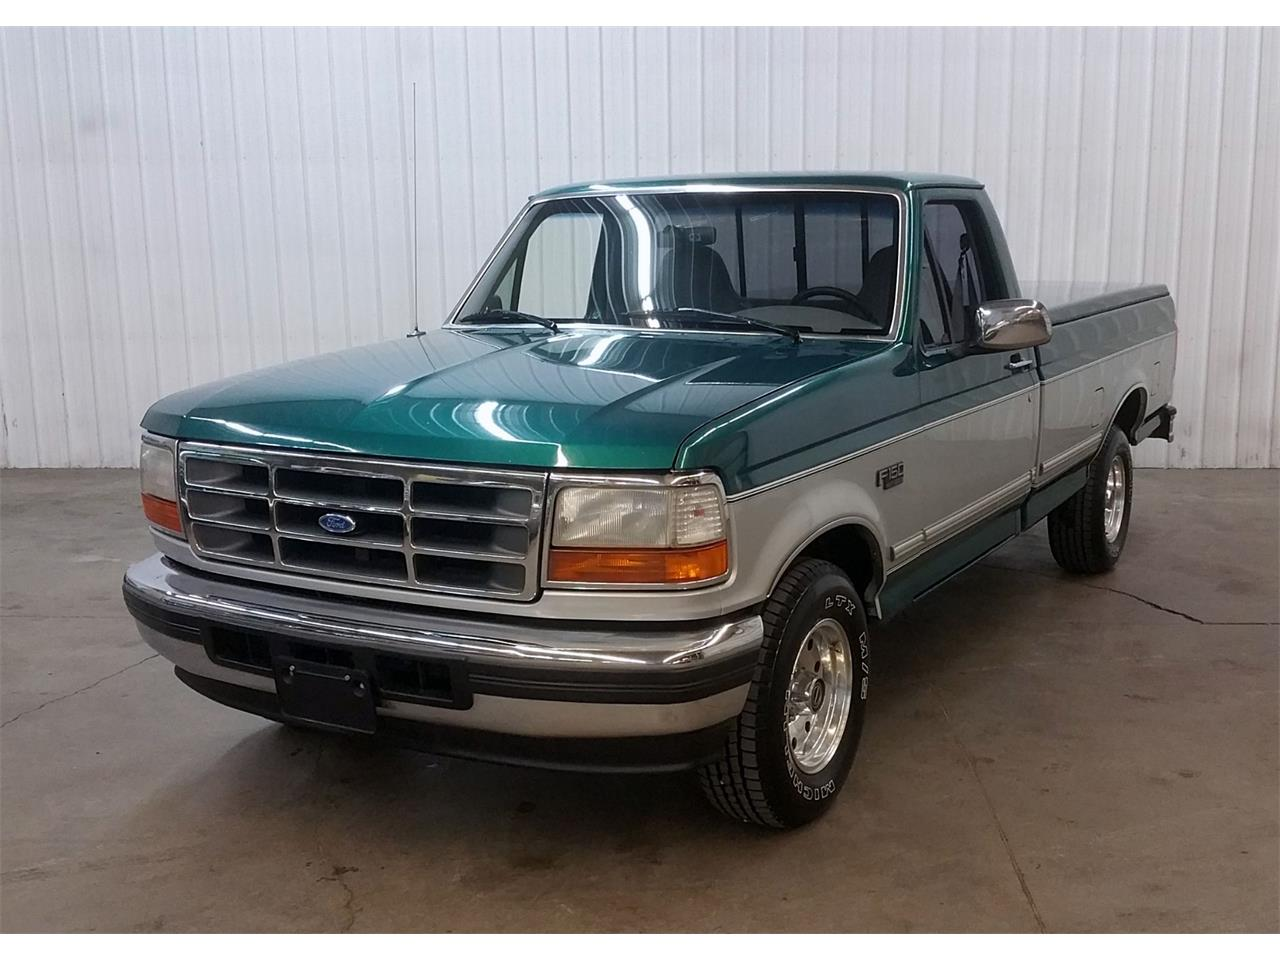 Large picture of 96 f150 mj0j